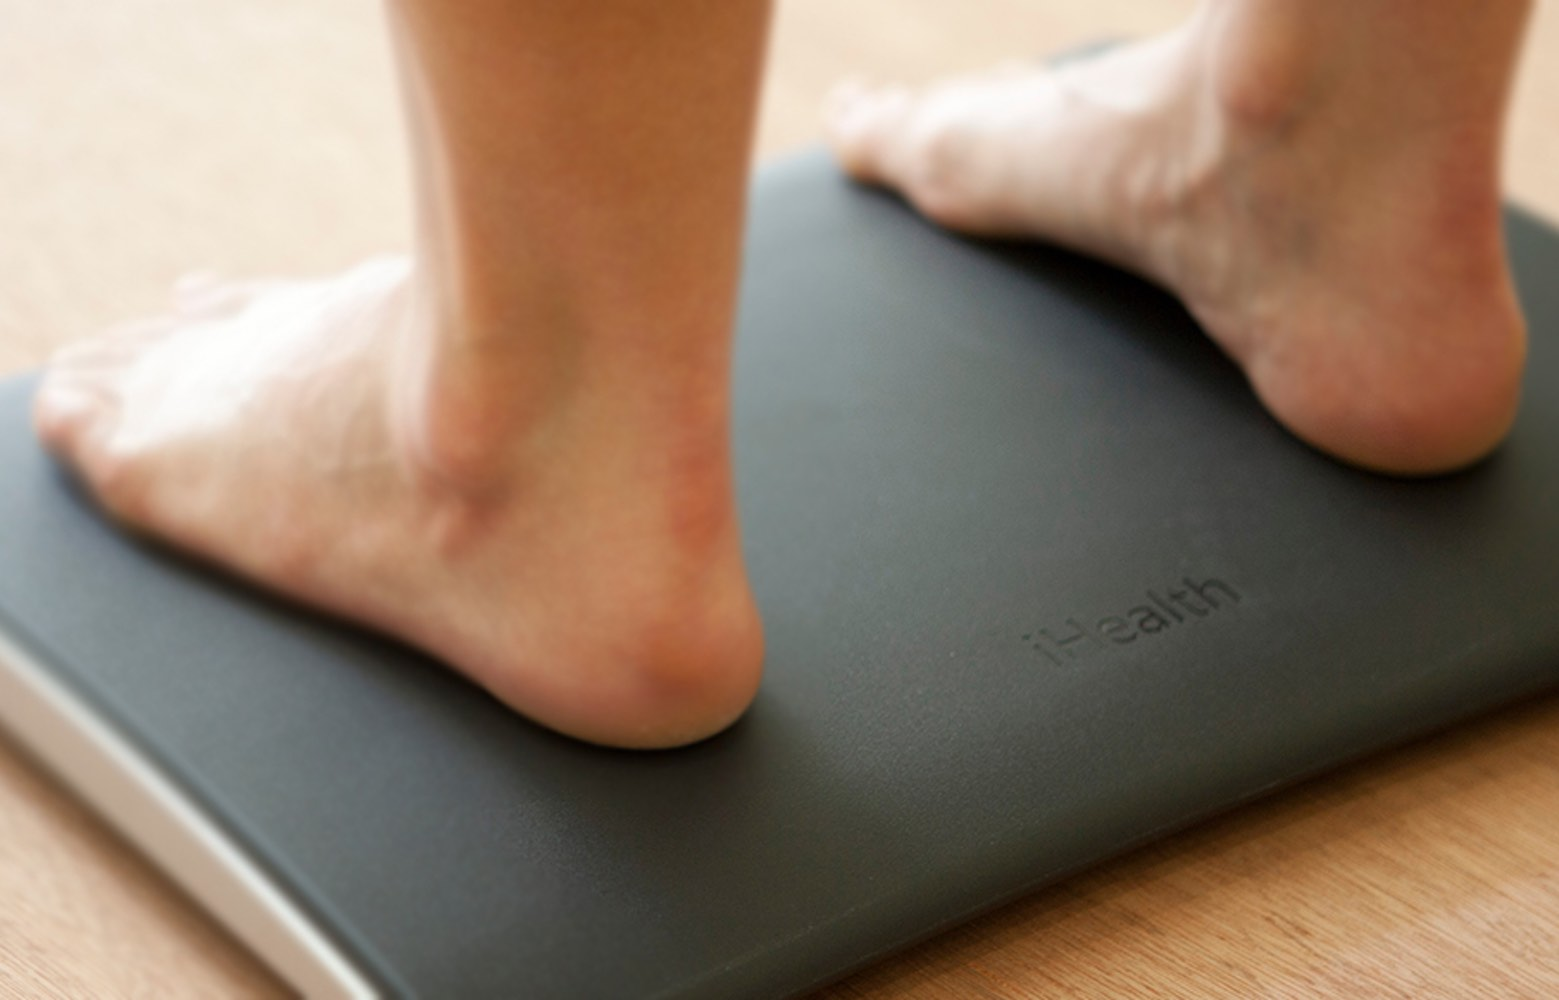 Wireless+Body+Analysis+Scale+By+IHealth+Labs